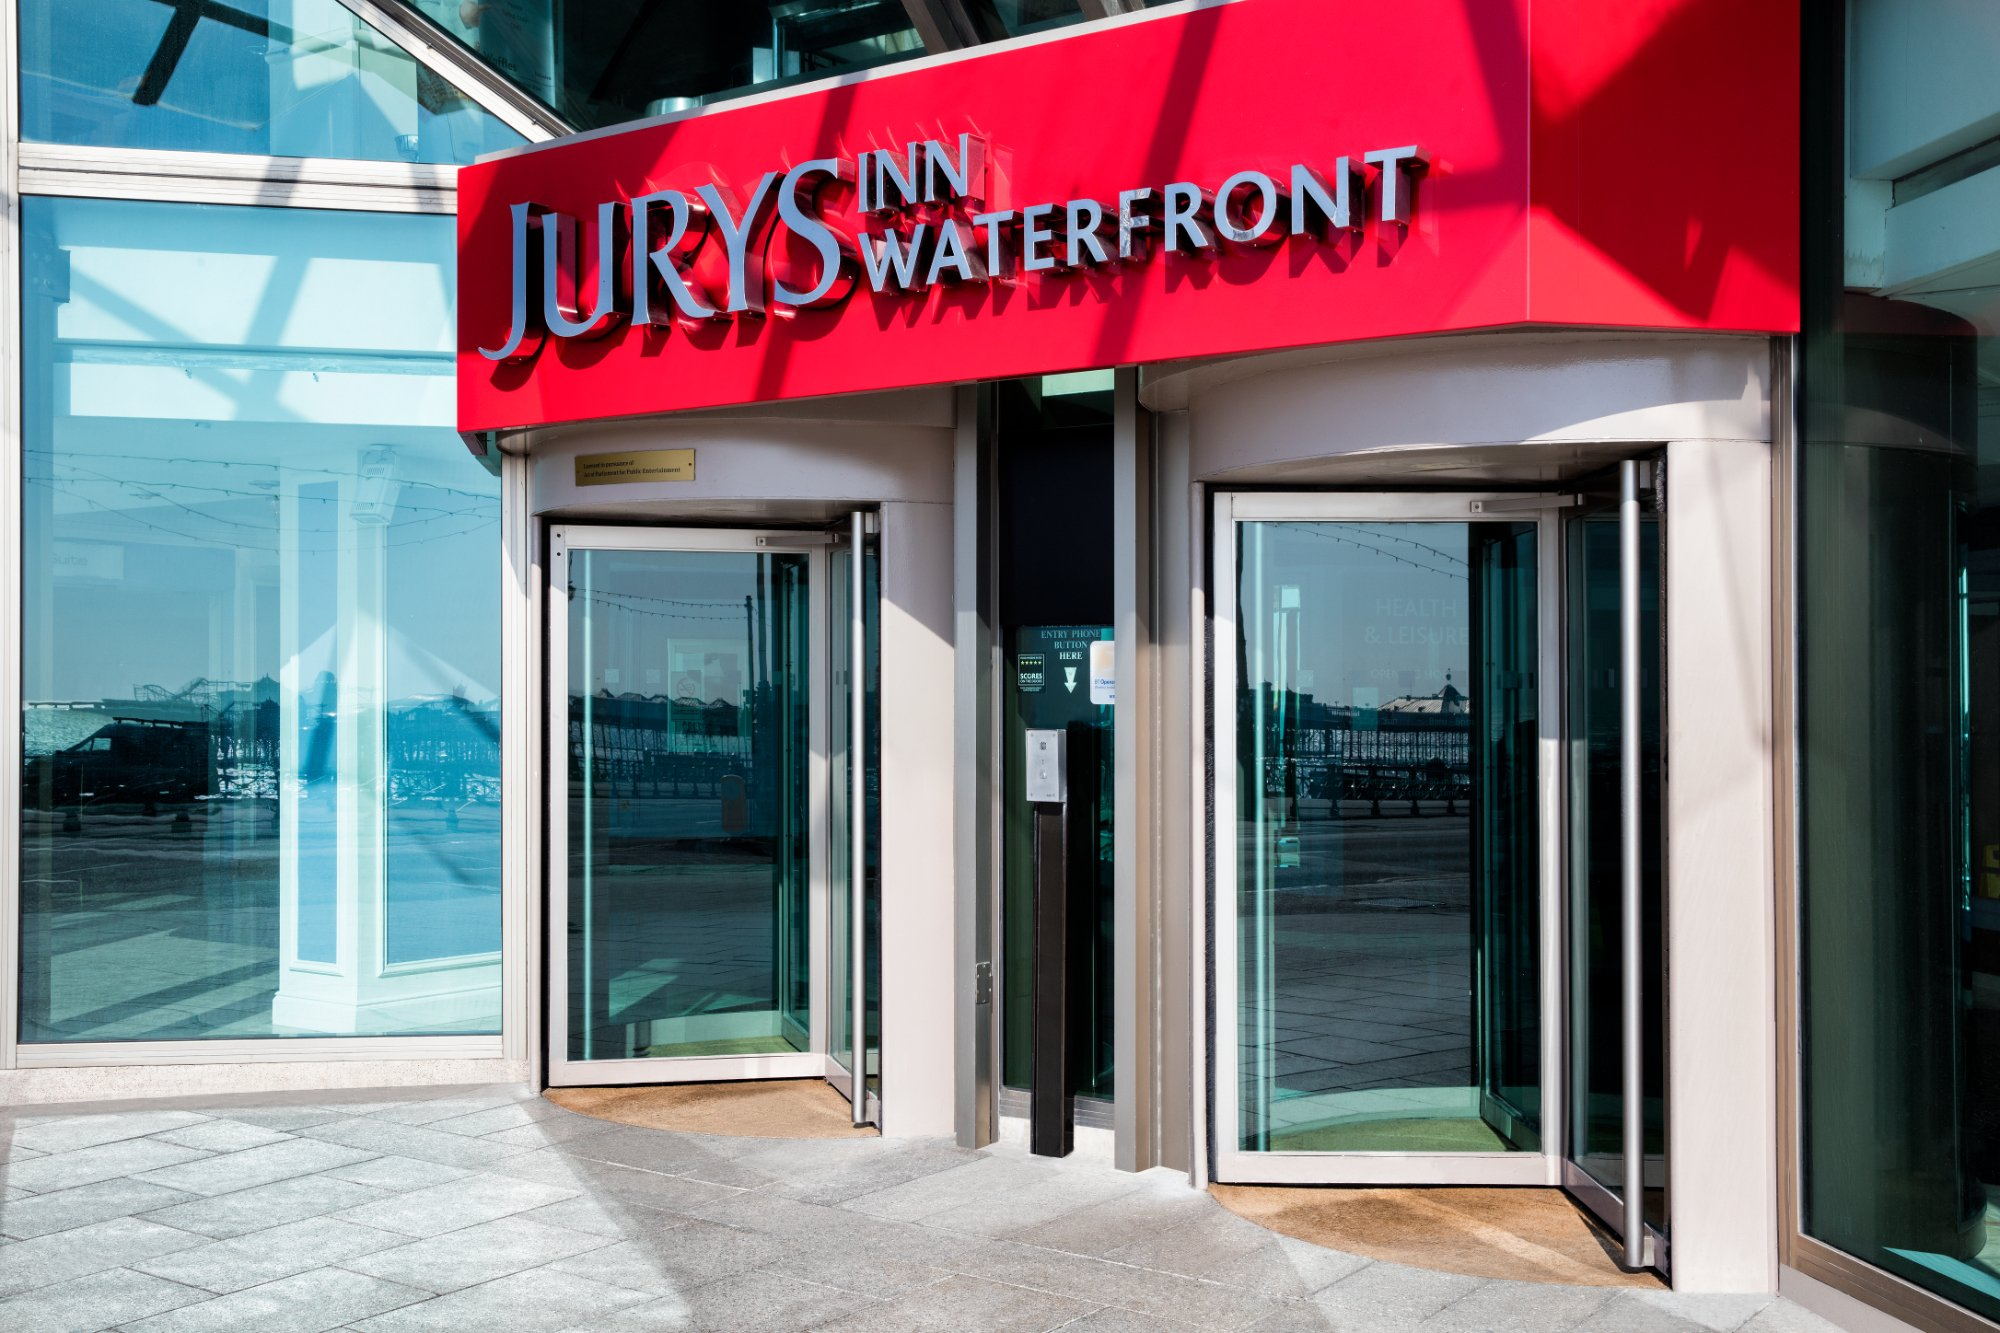 Jurys Inn Brighton Waterfront